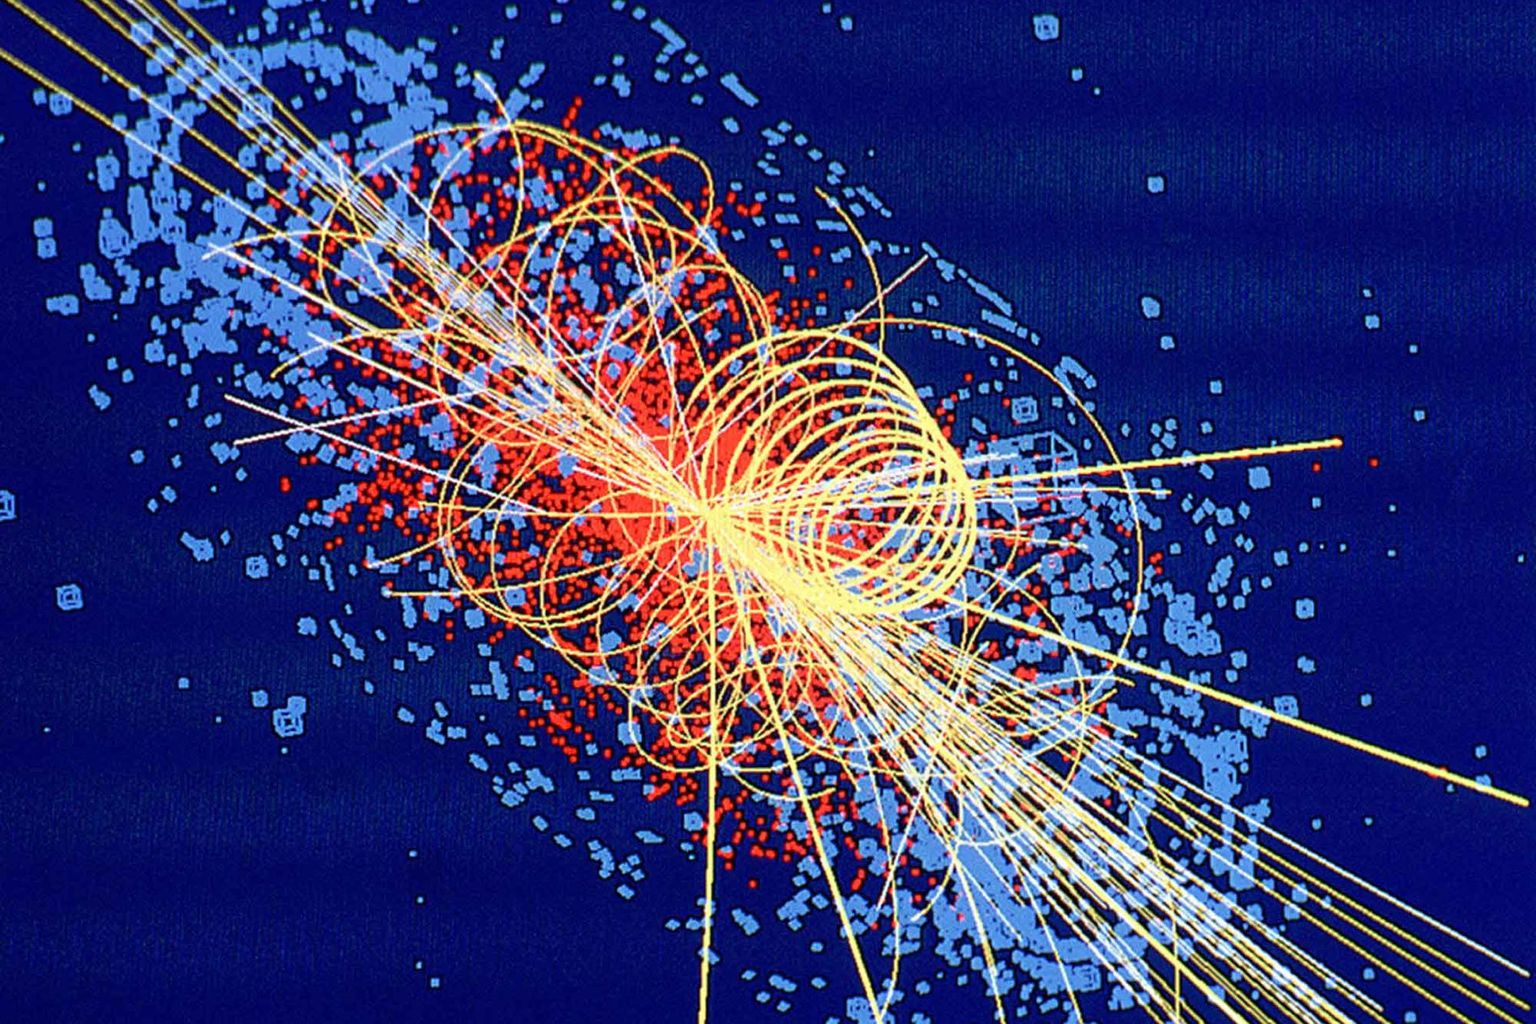 Higgs boson: Protons collide at 14 TeV in this simulation from CMS, producing four muons. Lines denote other particles, and energy deposited is shown in blue